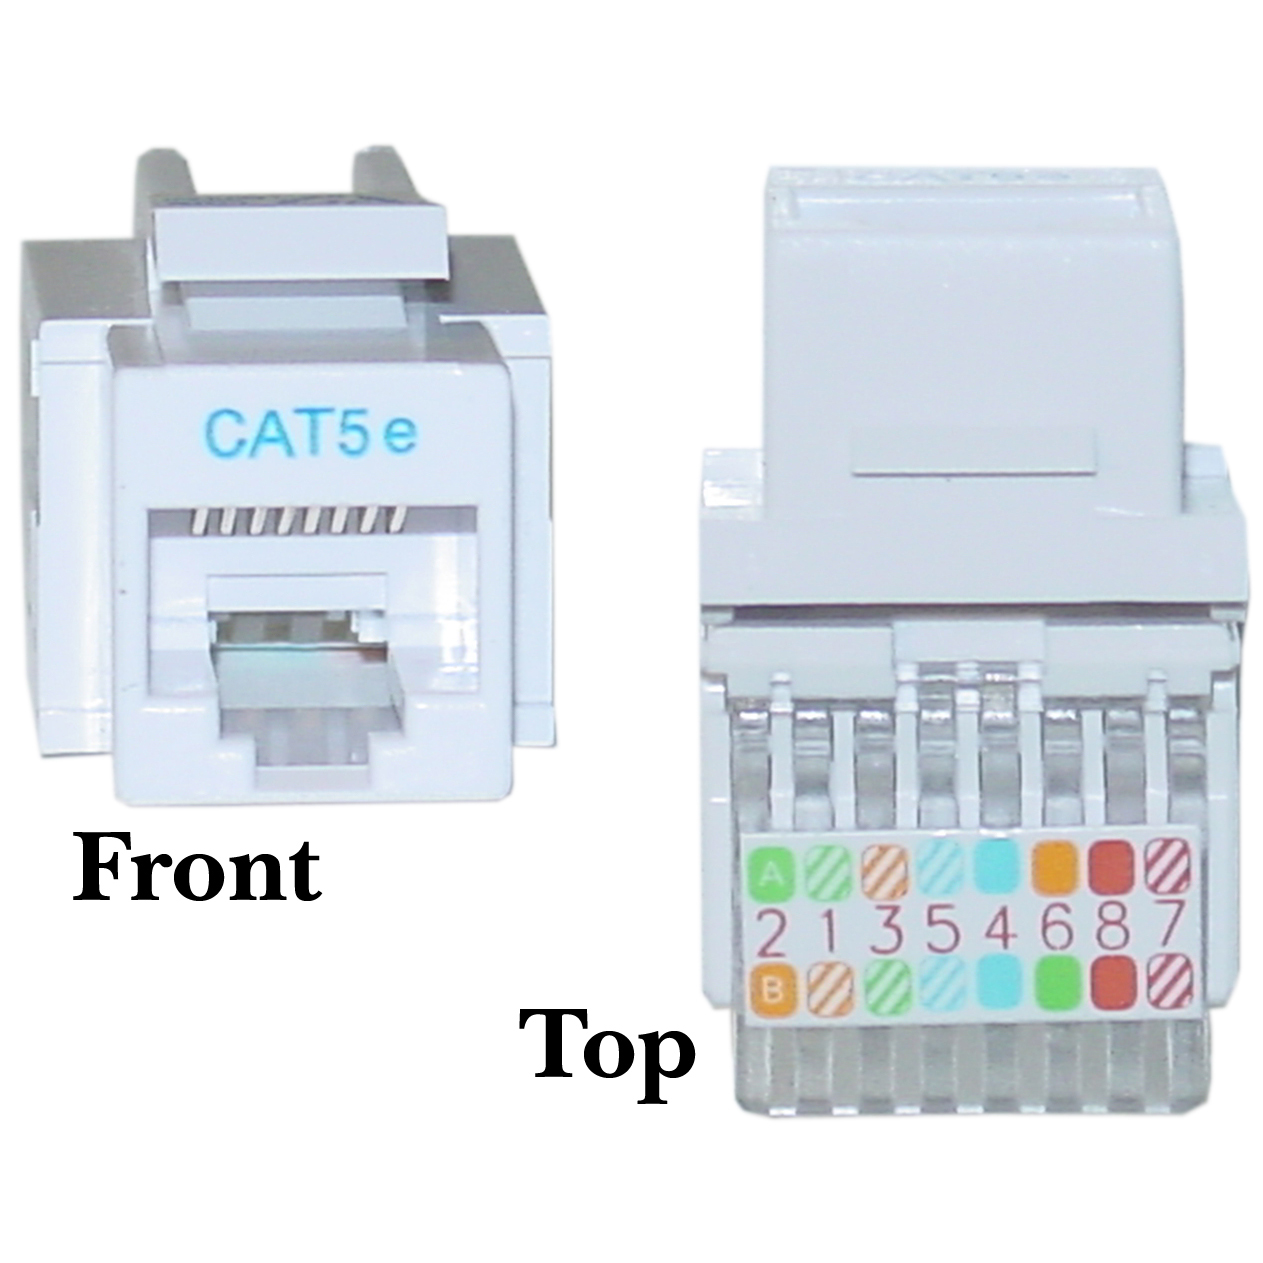 hight resolution of cat5e wall jack wiring diagram cat5e wall jack wiring diagram r 568 cat5e wiring color code